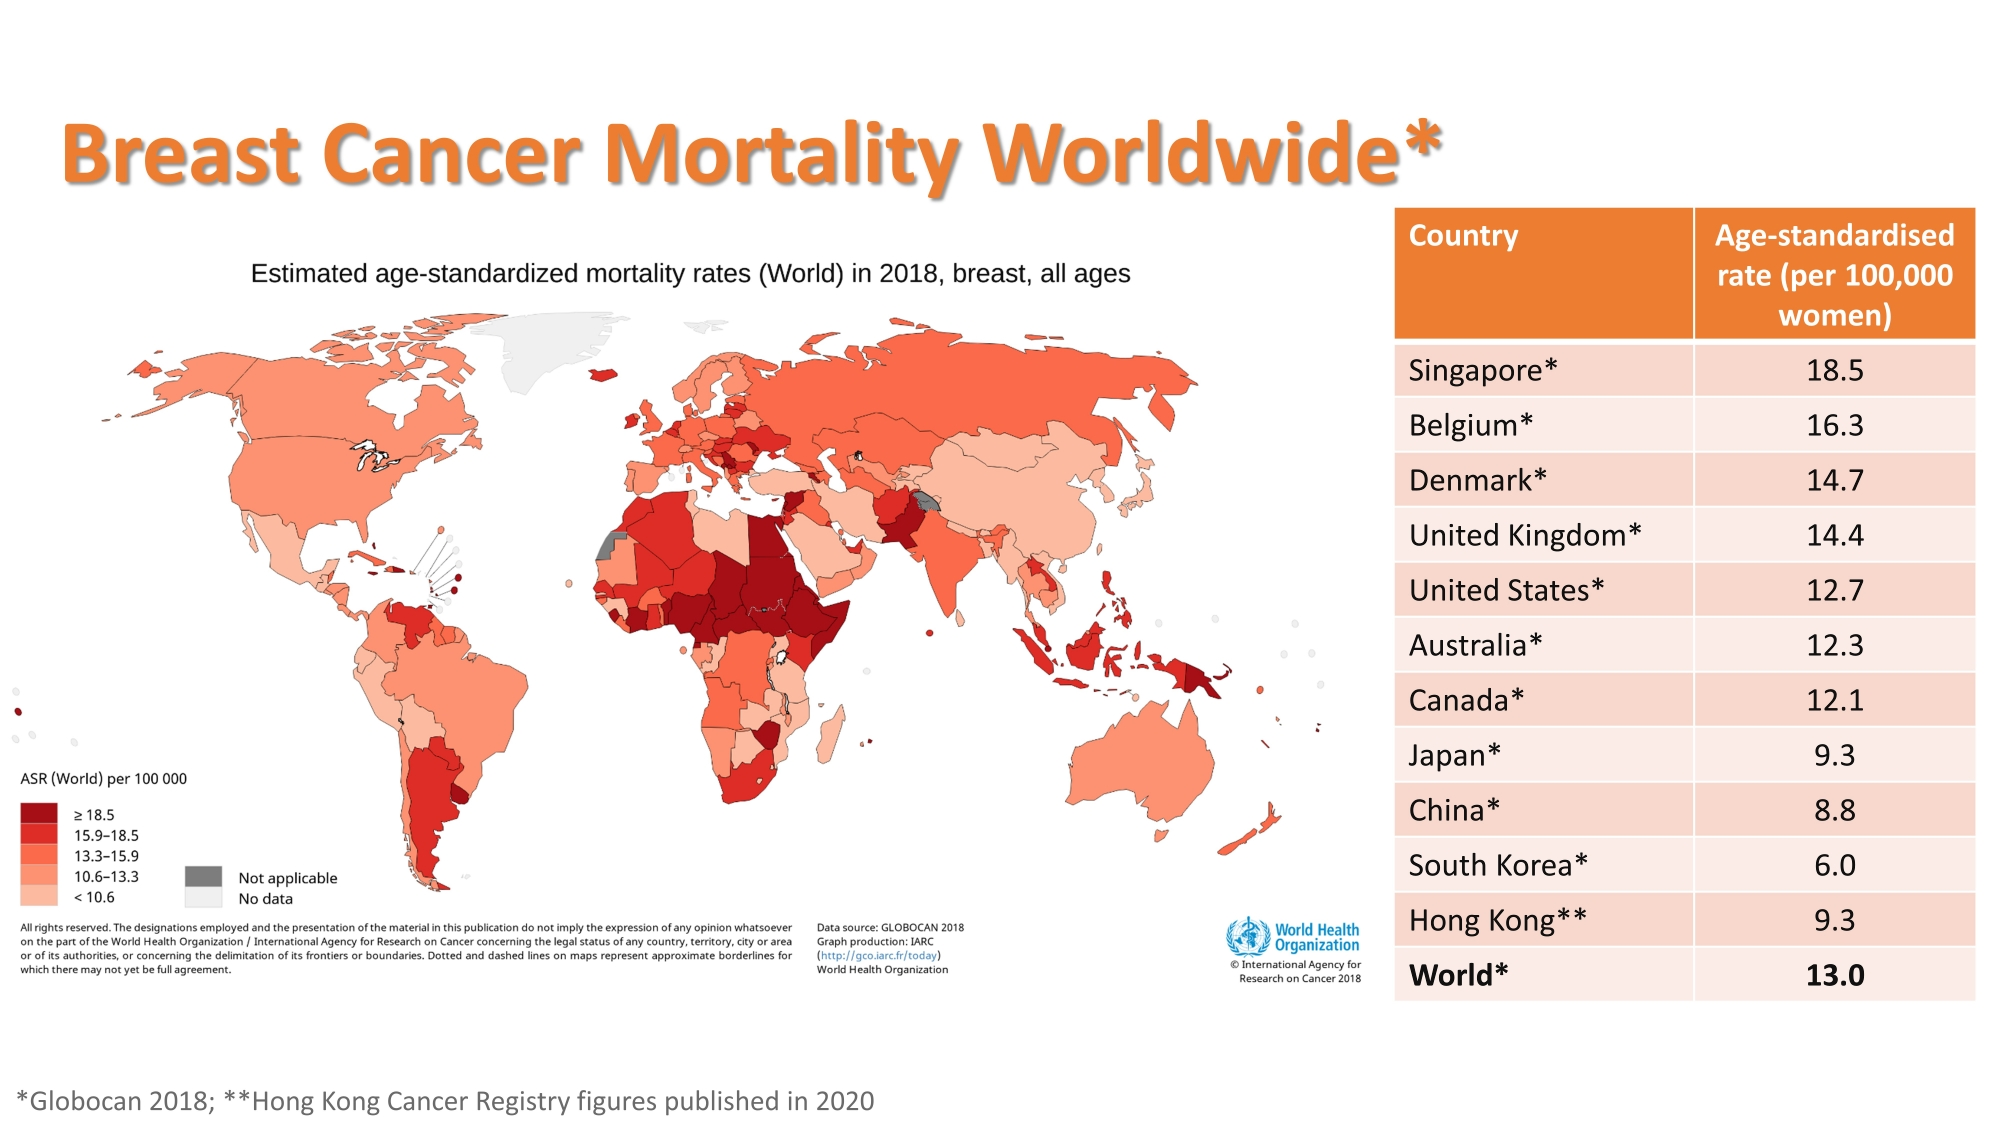 Self Photos / Files - 06. Breast Cancer Mortality Worldwide